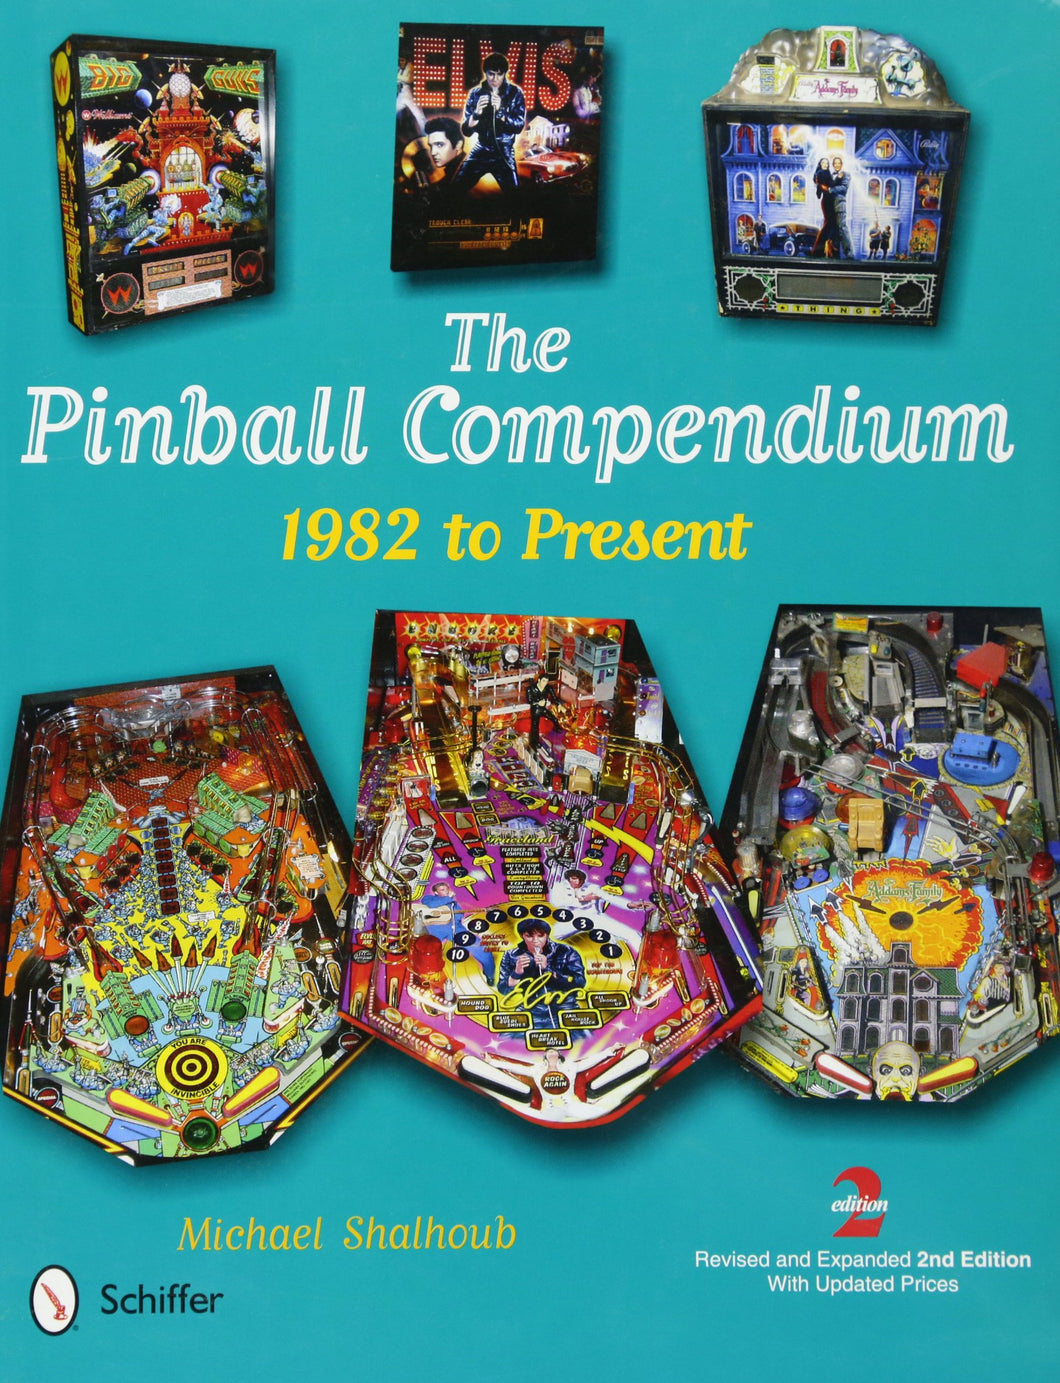 The Pinball Compendium - 1982 to Present